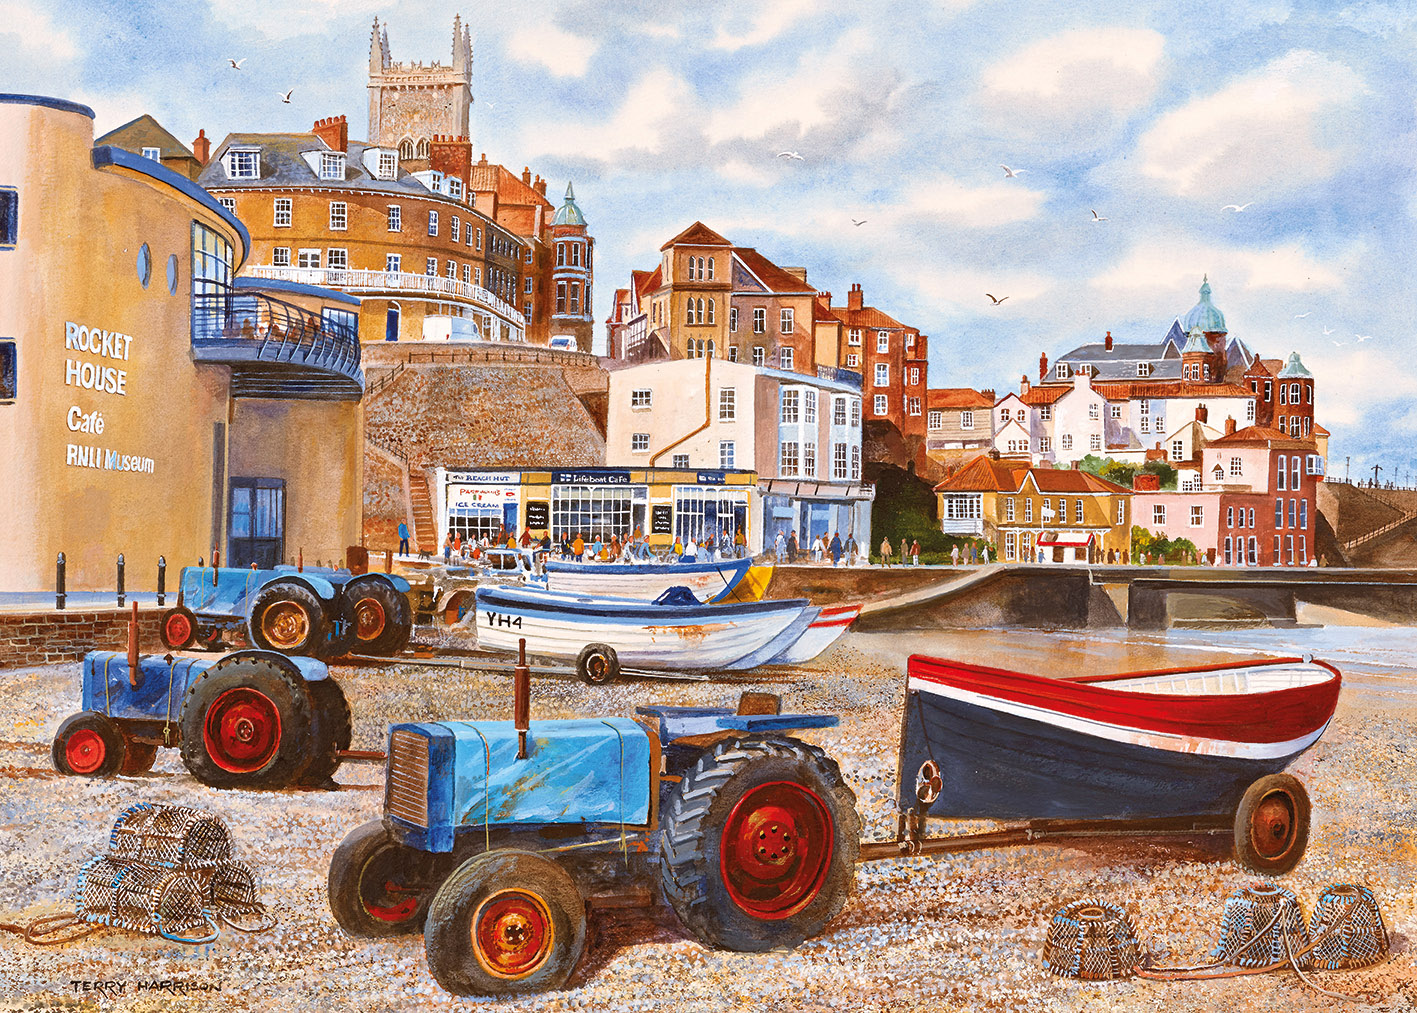 Cromer Jigsaw Puzzle